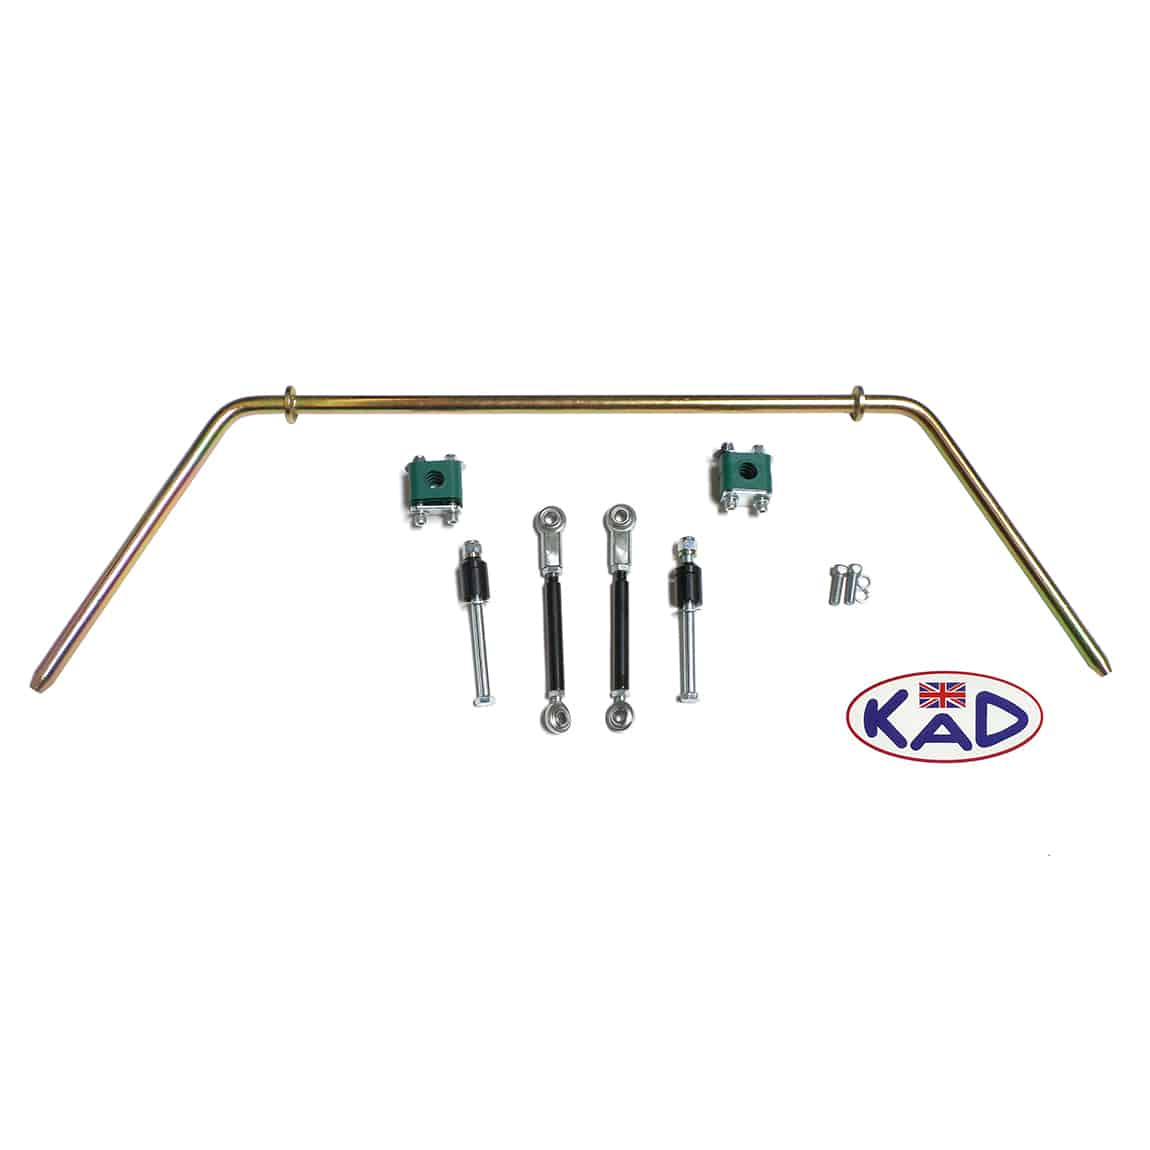 KAD Front Anti-Roll Bar